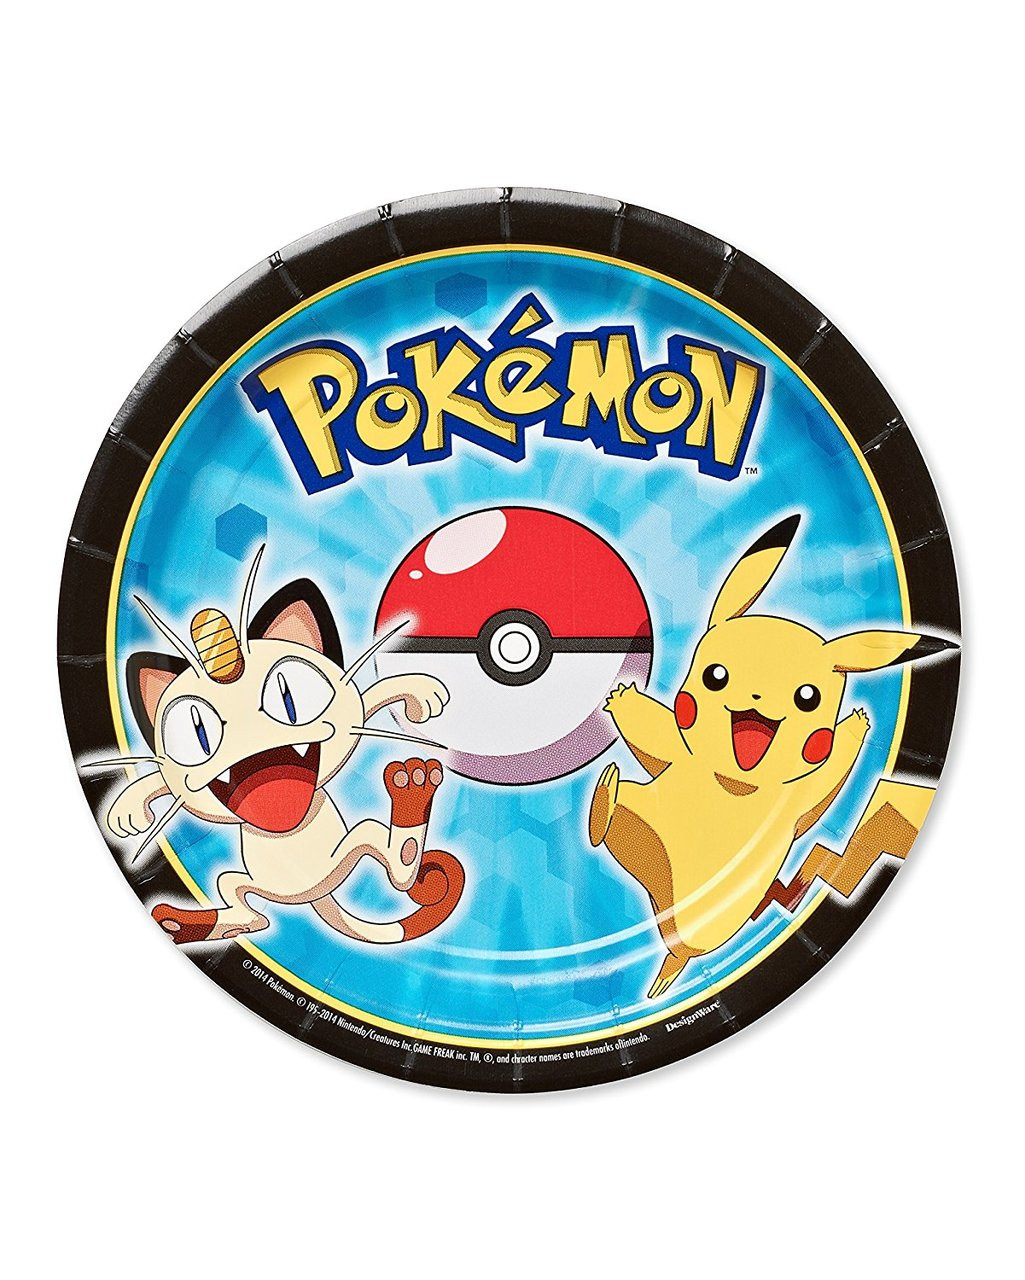 Pokemon Pikachu And Friends Small Dessert Plates - Party